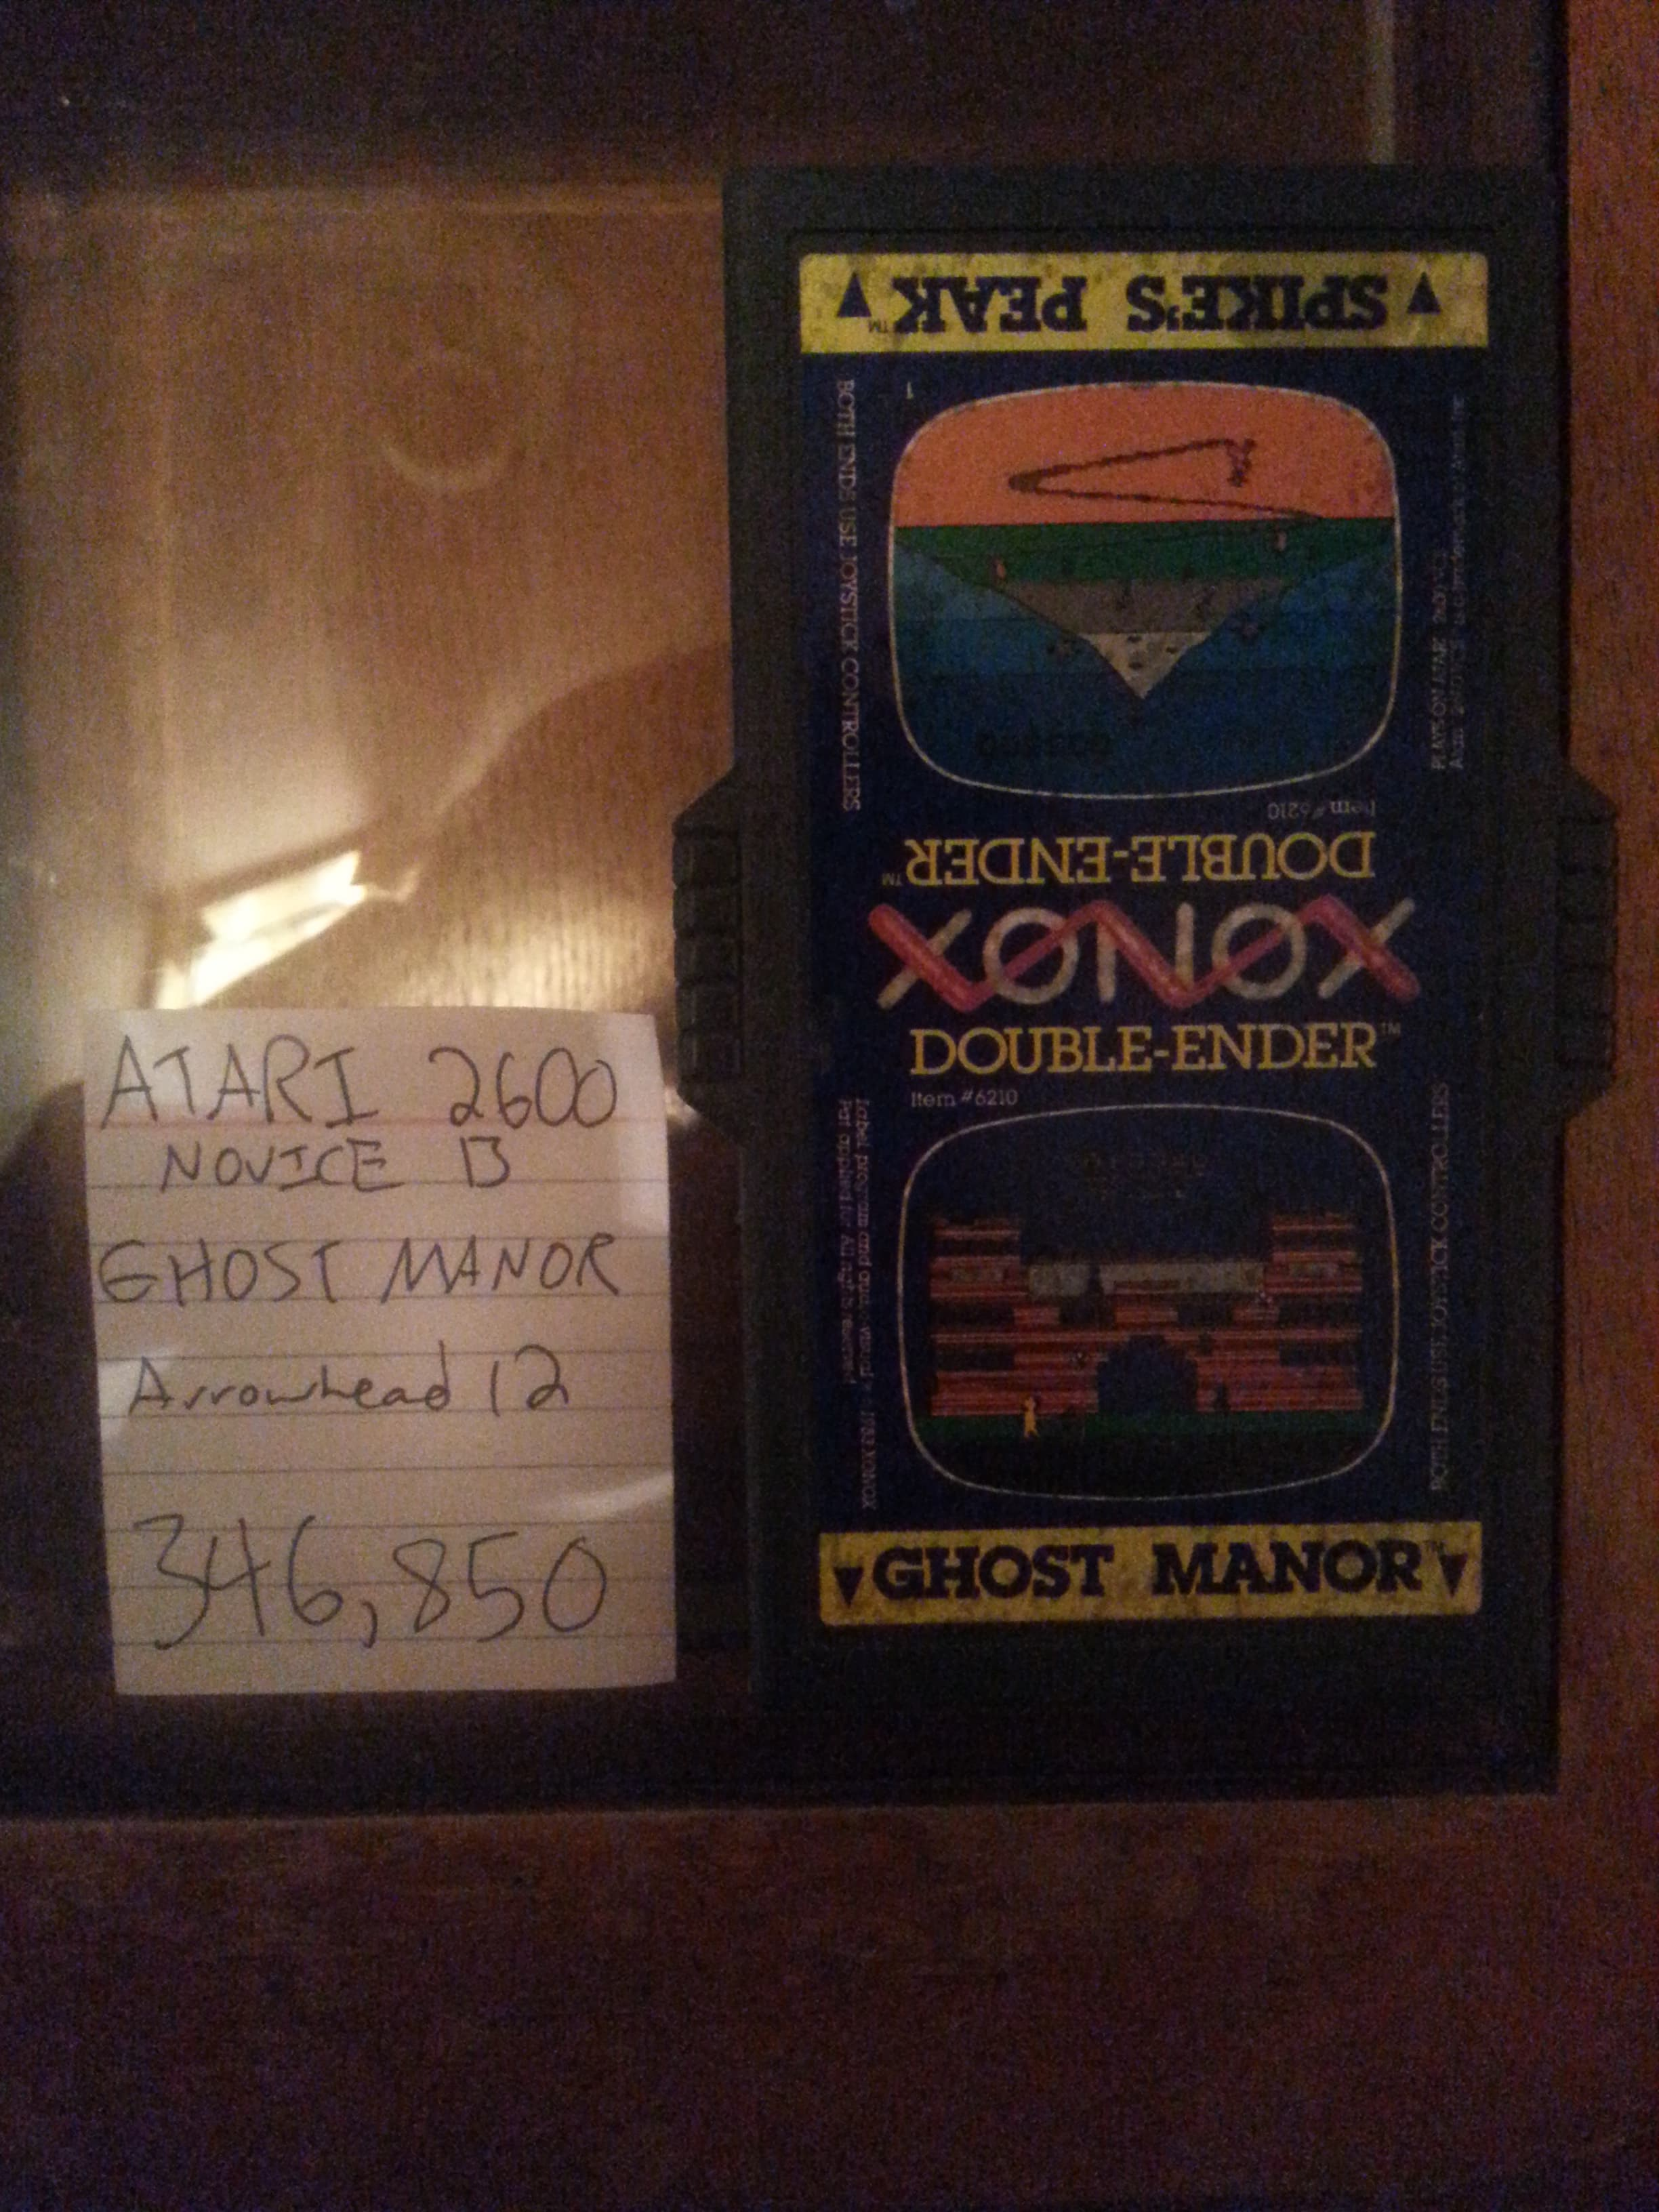 Arrowhead12: Ghost Manor (Atari 2600 Novice/B) 346,850 points on 2018-10-06 02:29:18